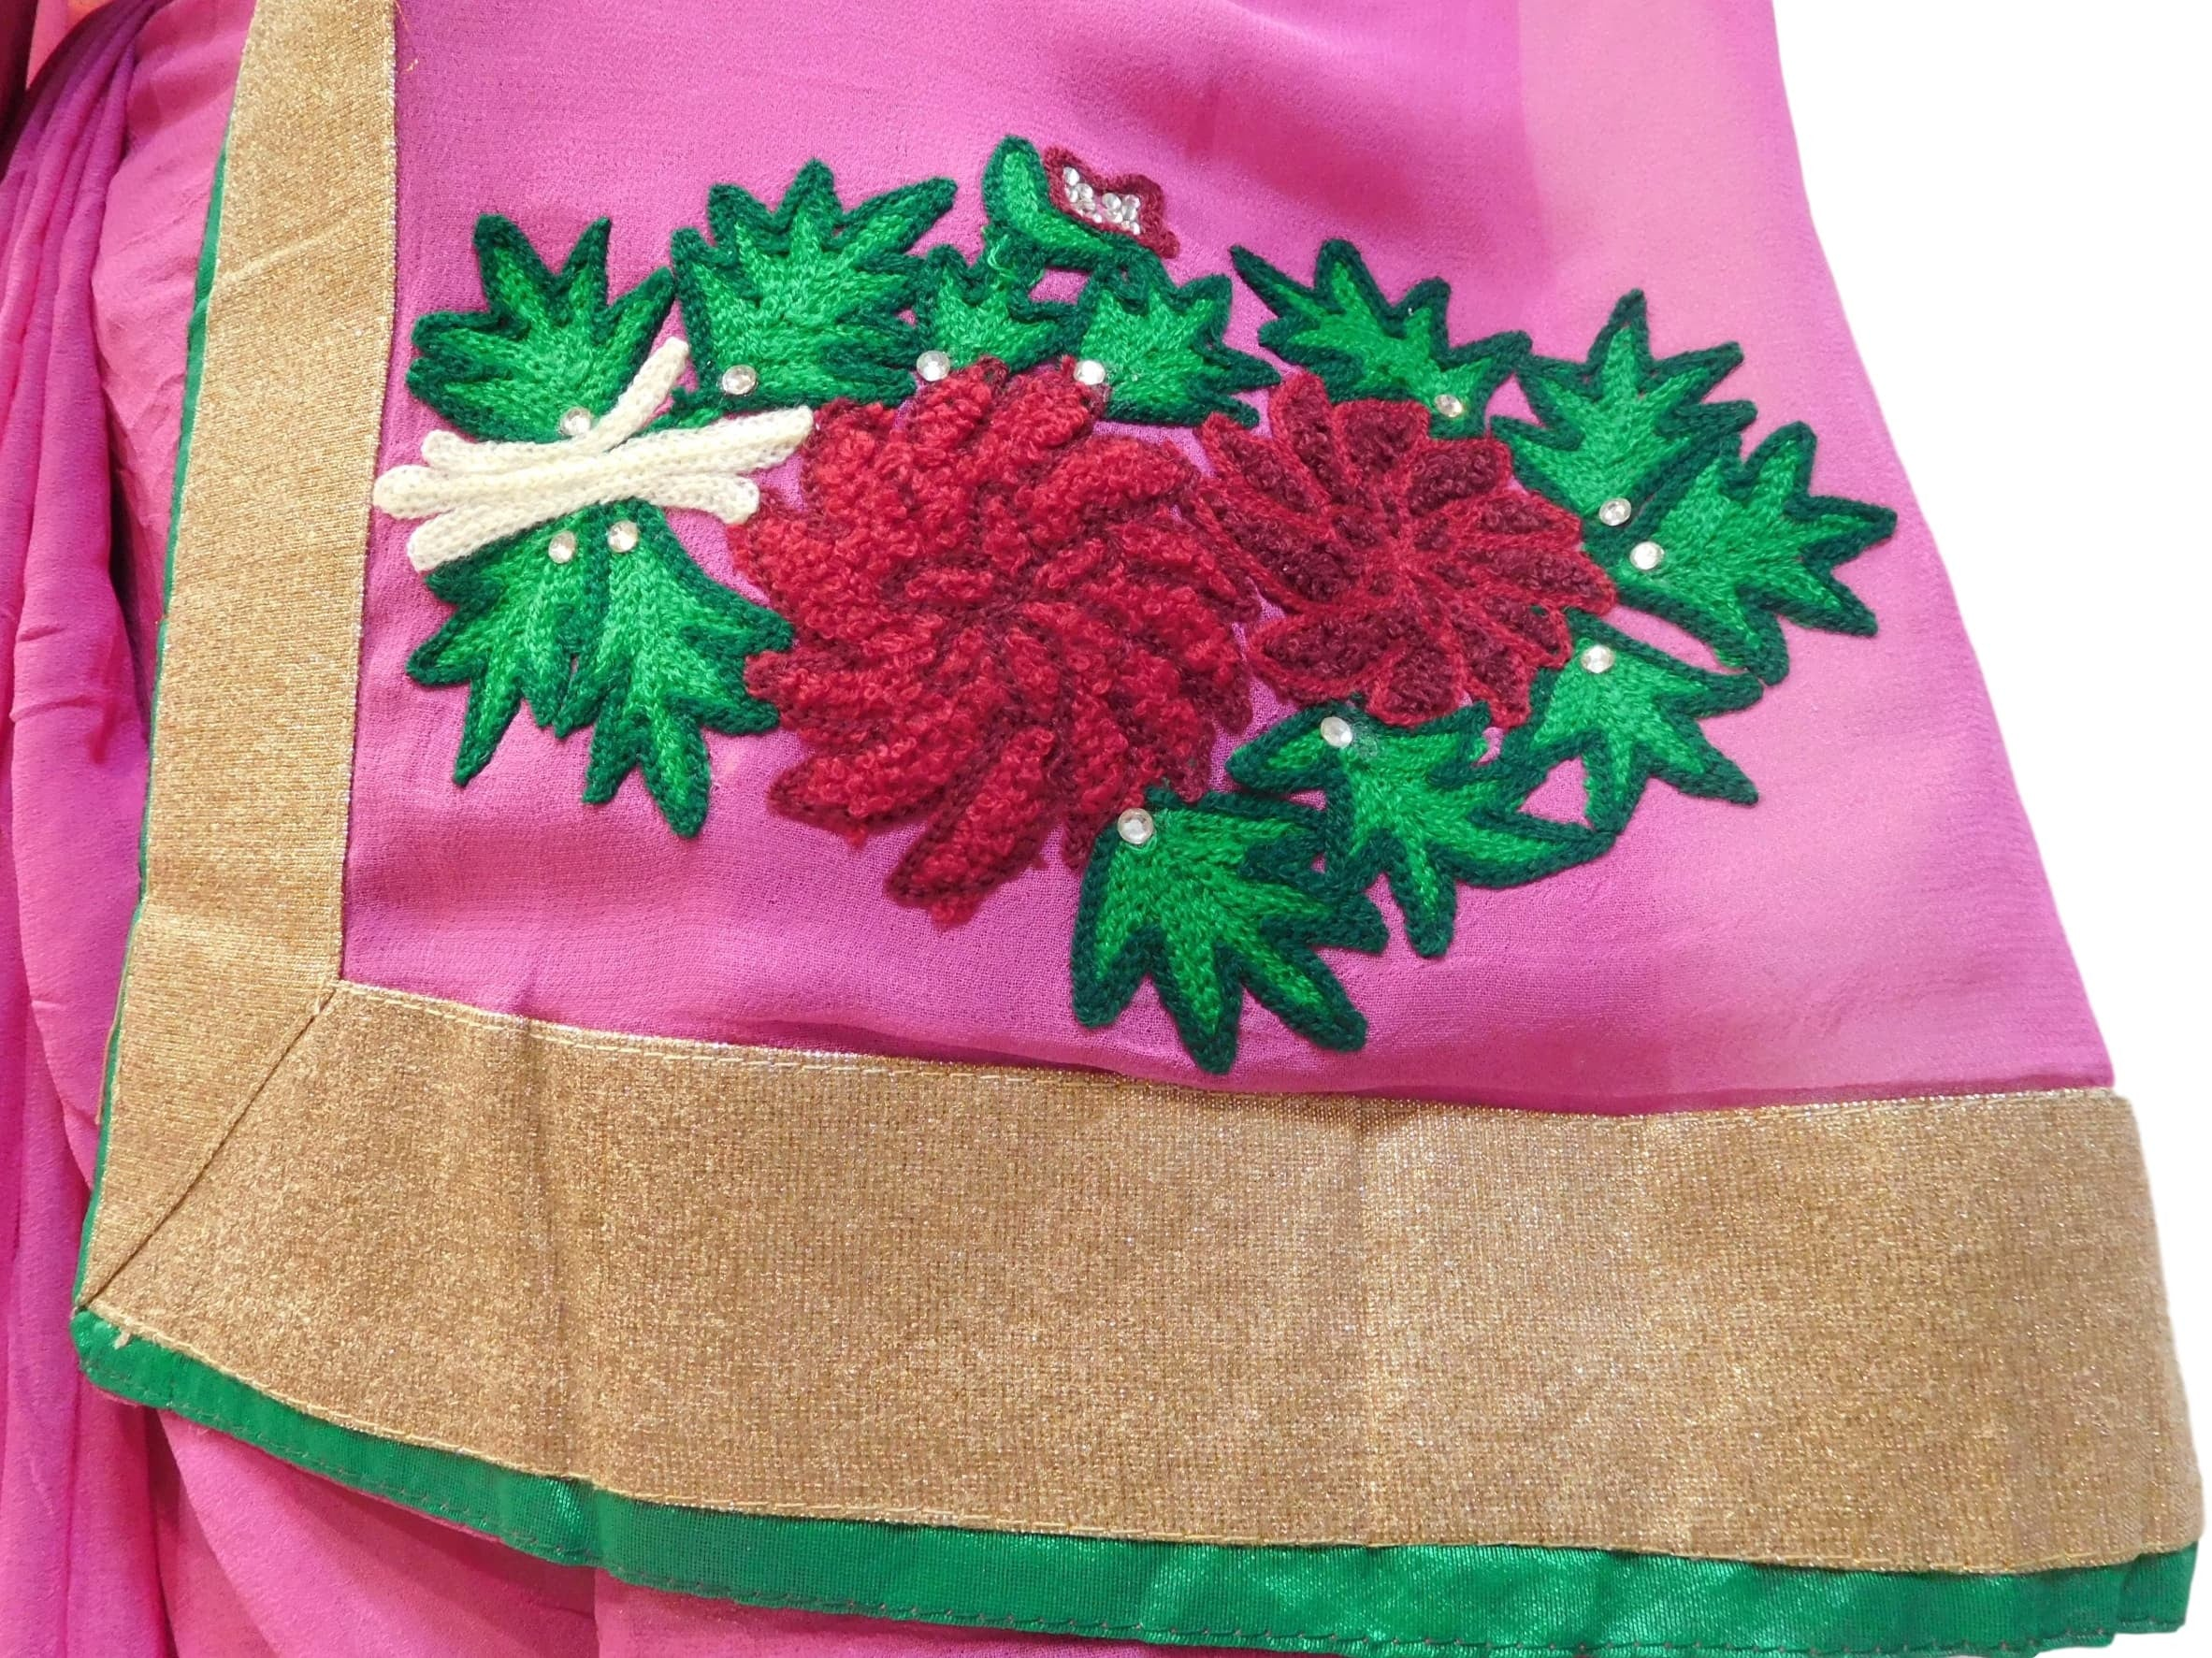 Pink Designer Georgette (Viscos) Hand Embroidery Work Saree Sari